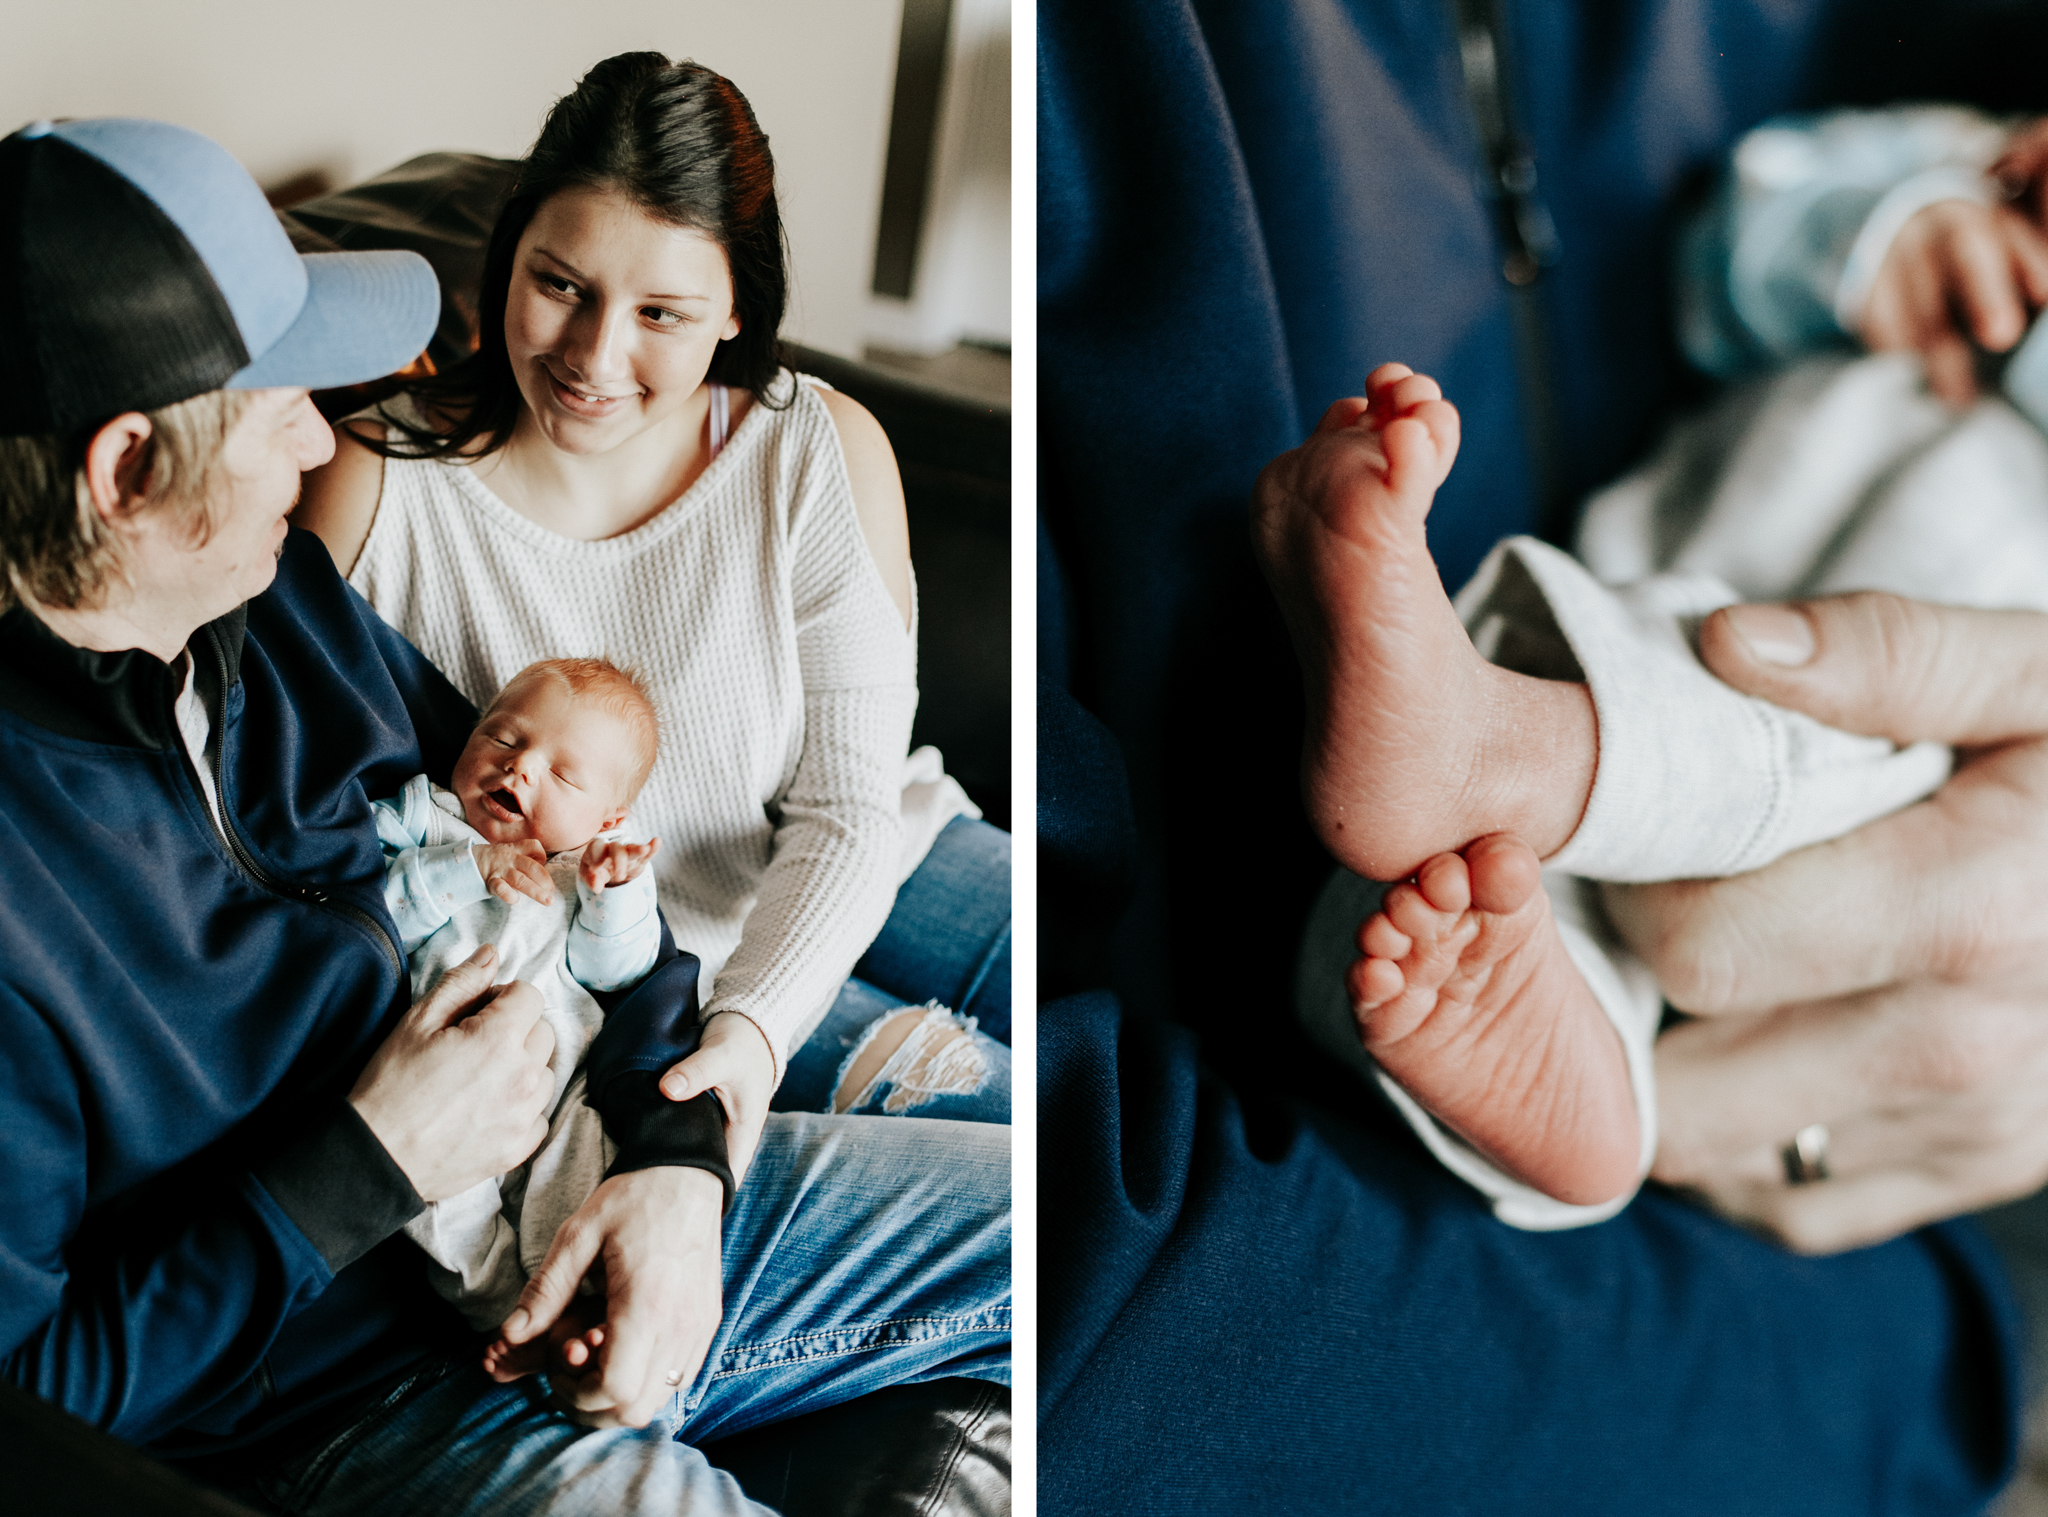 lethbridge-birth-photography-love-and-be-loved-photographer-baby-newborn-karter-image-picture-photo-50.jpg